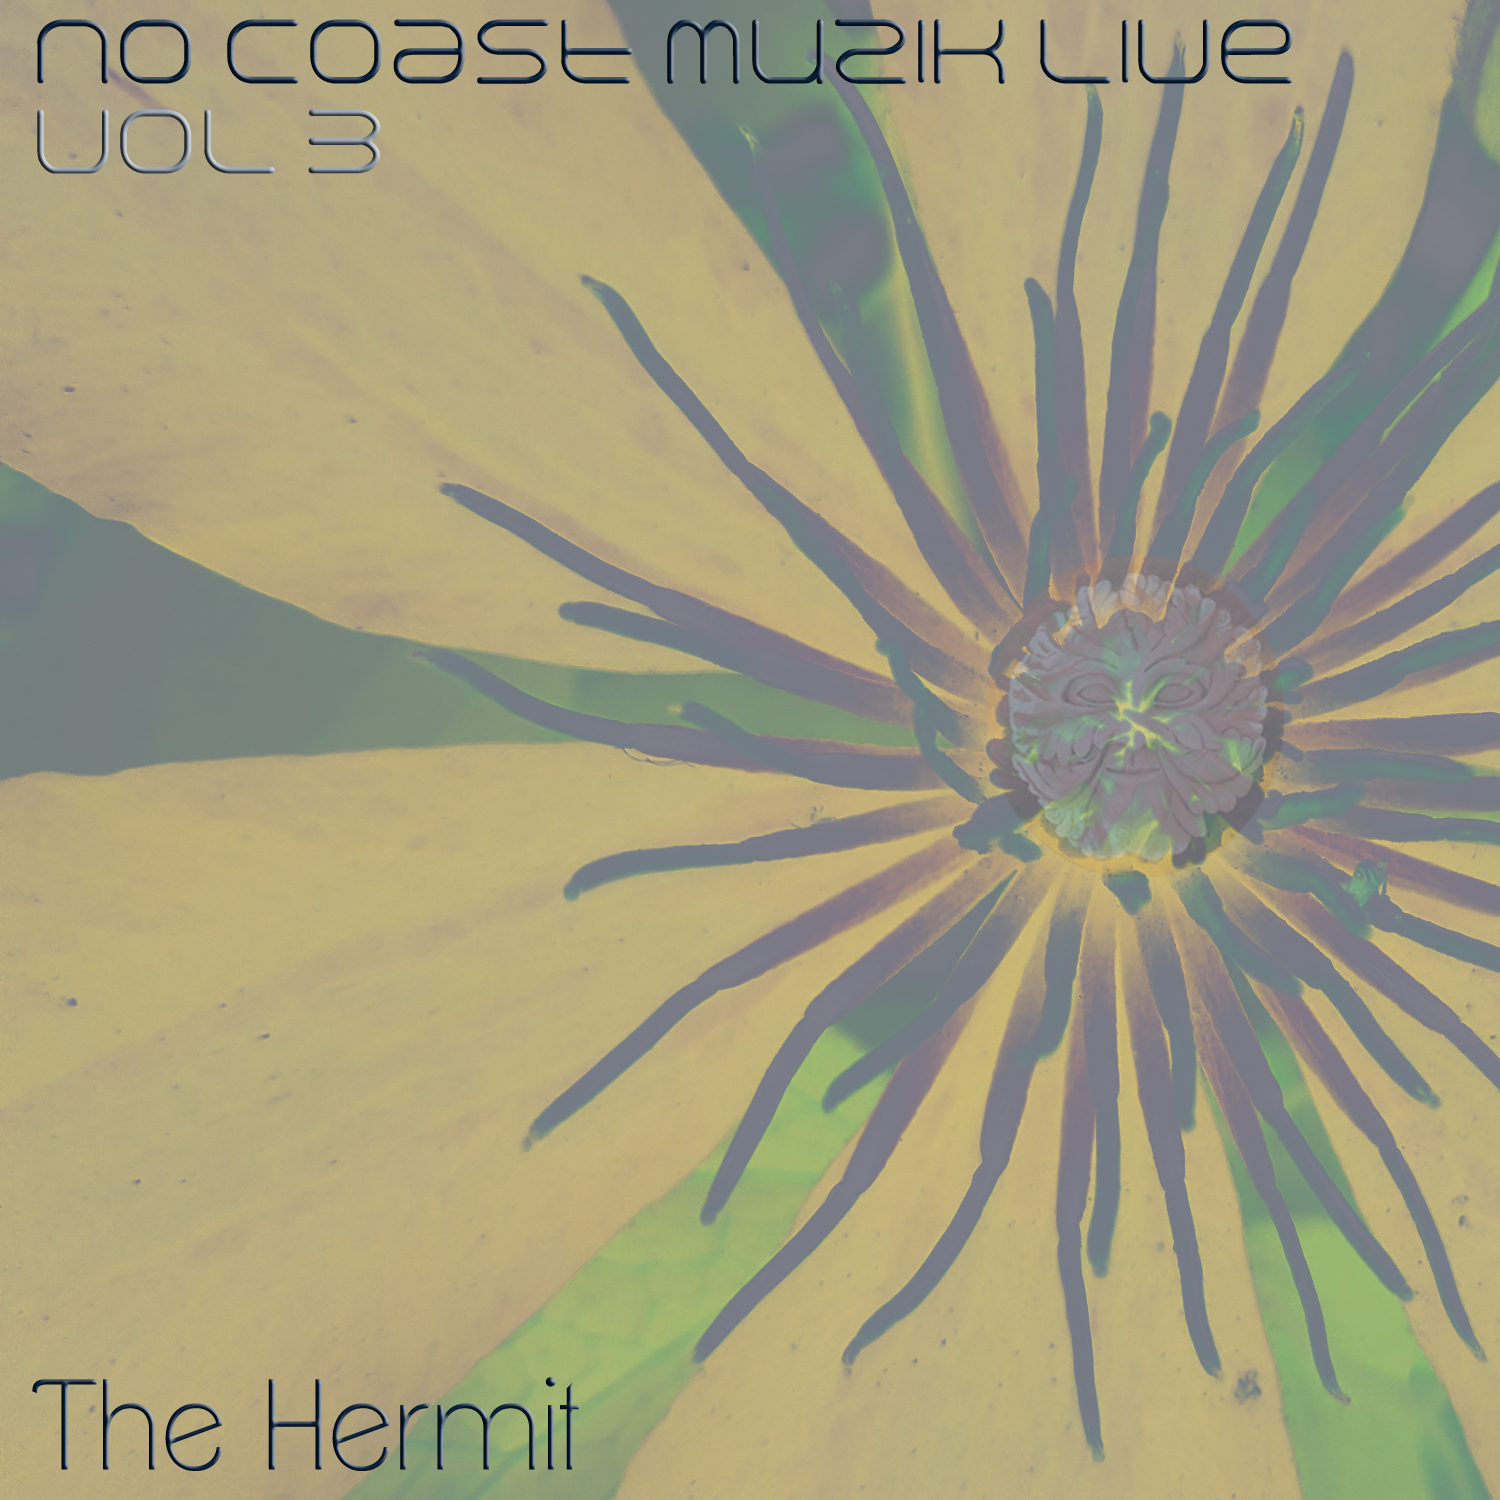 No Coast Muzik LIVE Series Vol 3 Featuring The Hermit Recording Of Set Spun On A Facebook Broadcast 12 16 2017 Mixed With Vinyl Whilst Digging In